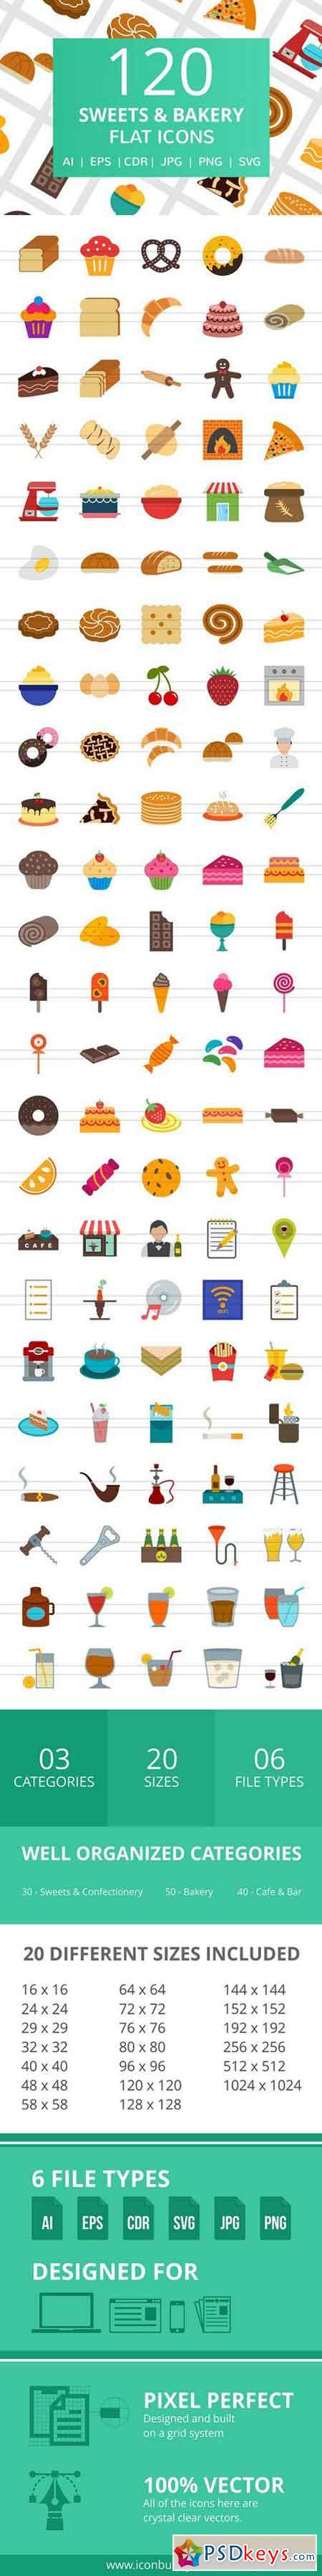 120 Sweets & Bakery Flat Icons 2185408